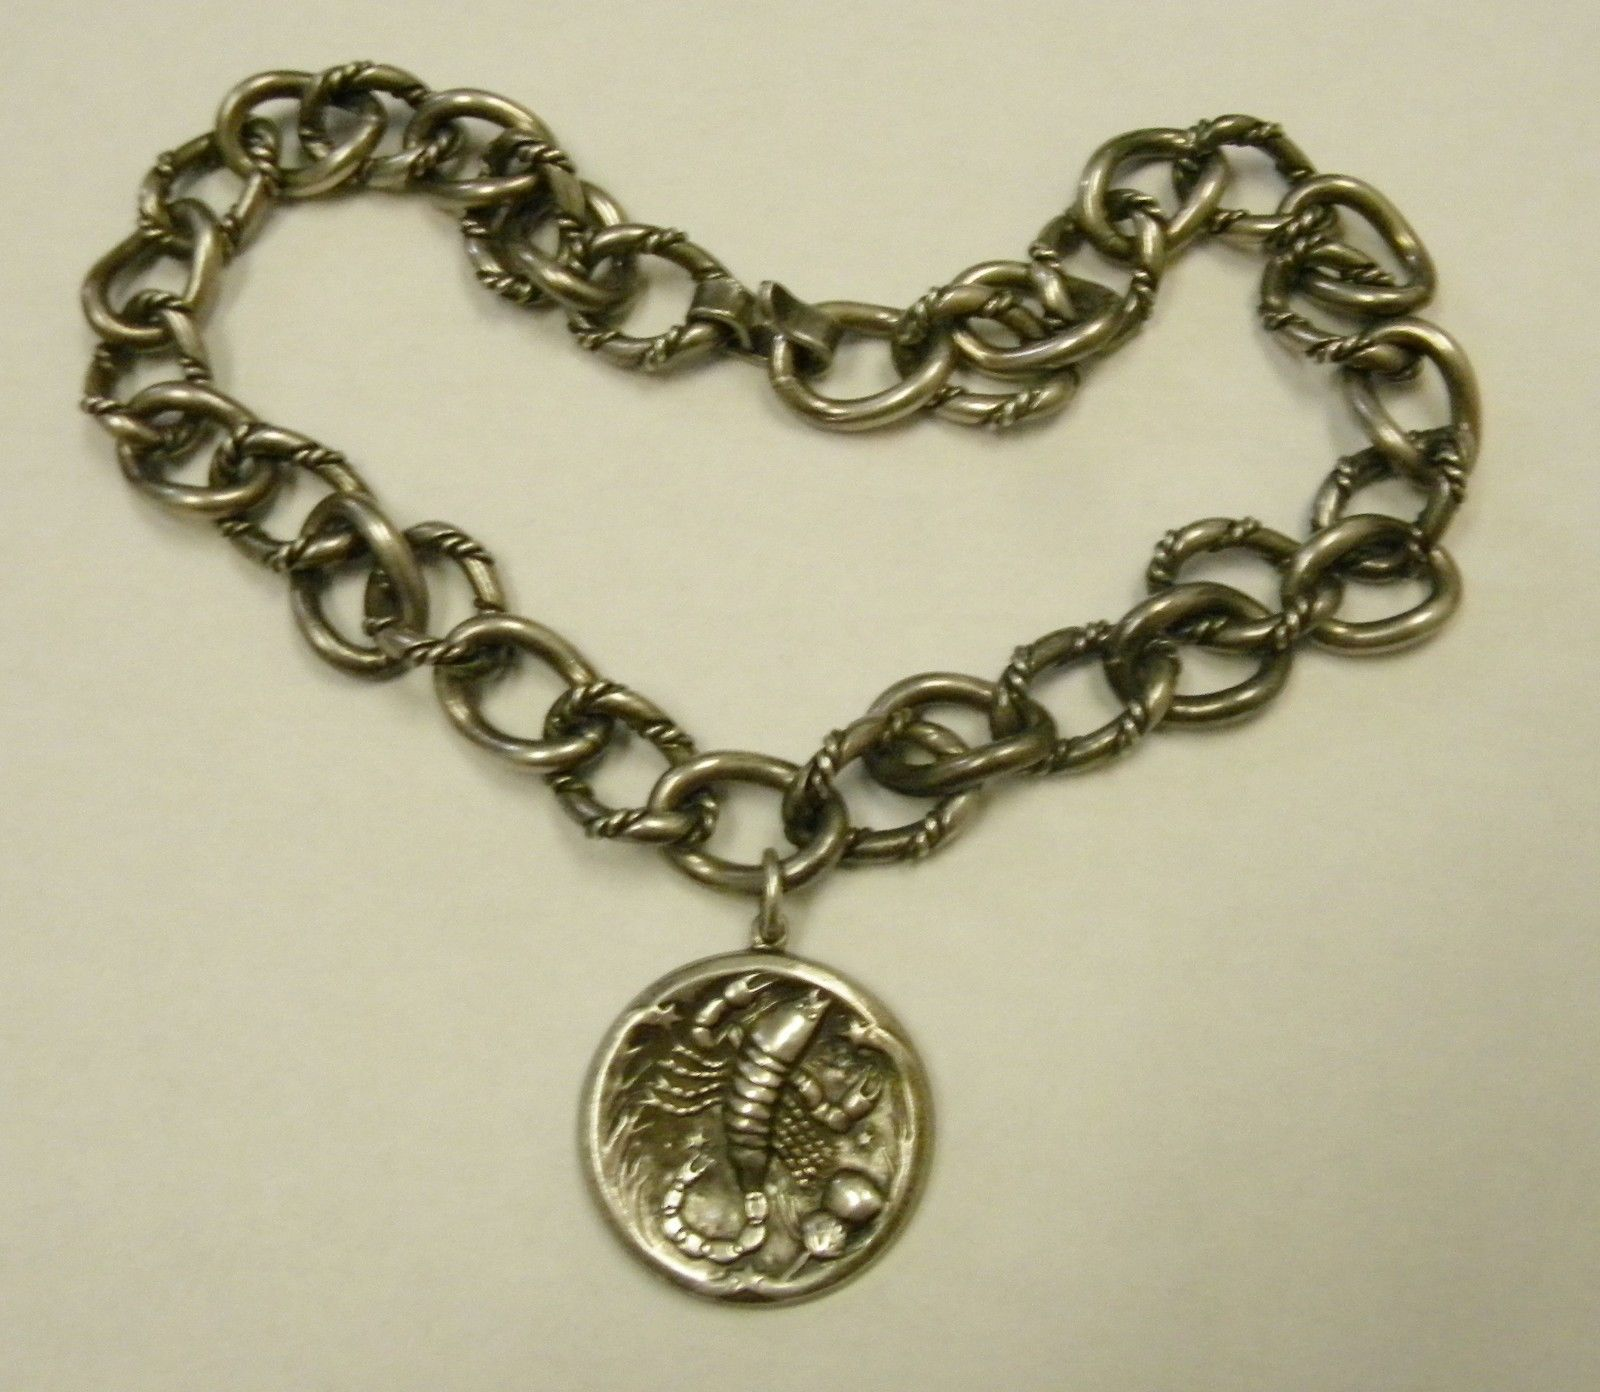 Scorpio necklace - pendant and chain by Georg Jensen USA Inc